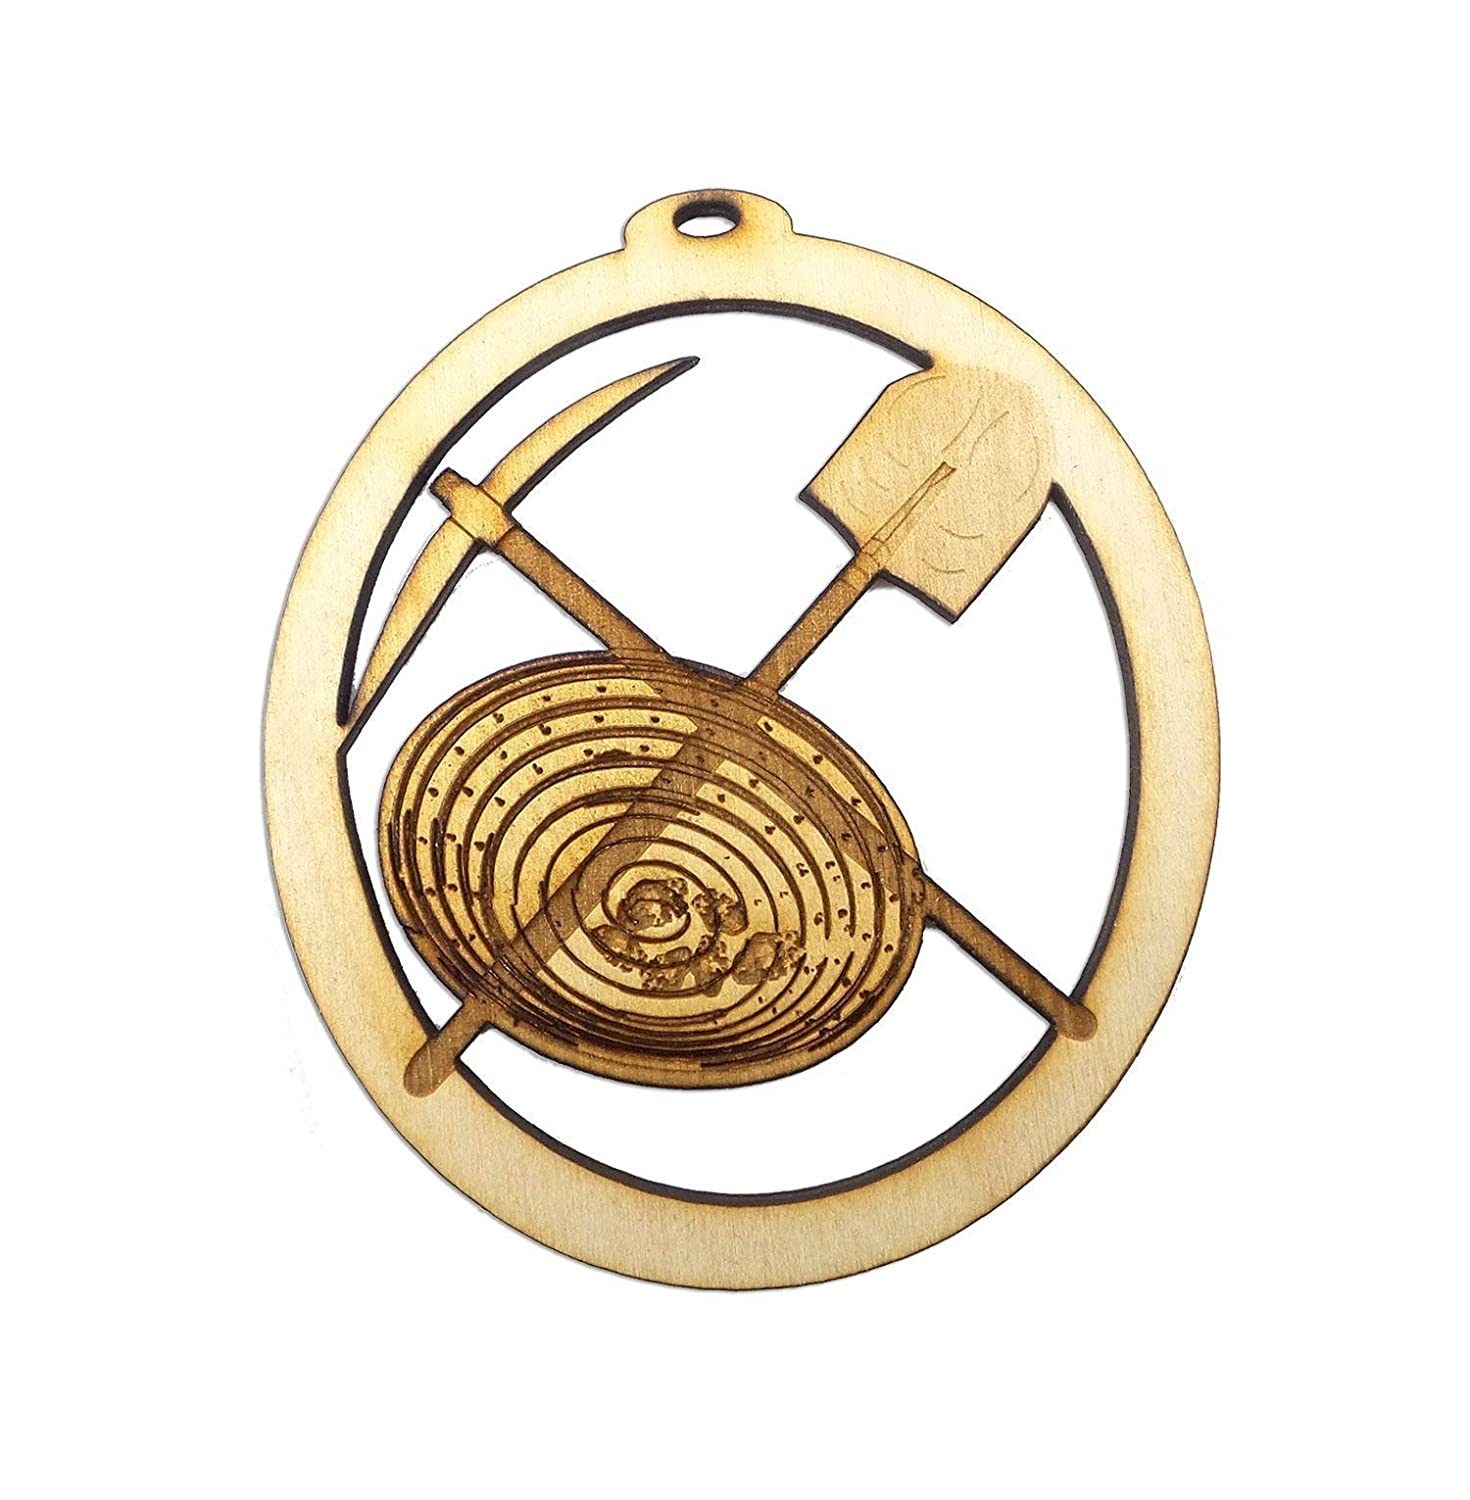 Personalized Gold Ornament OFFicial Max 65% OFF shop Mining